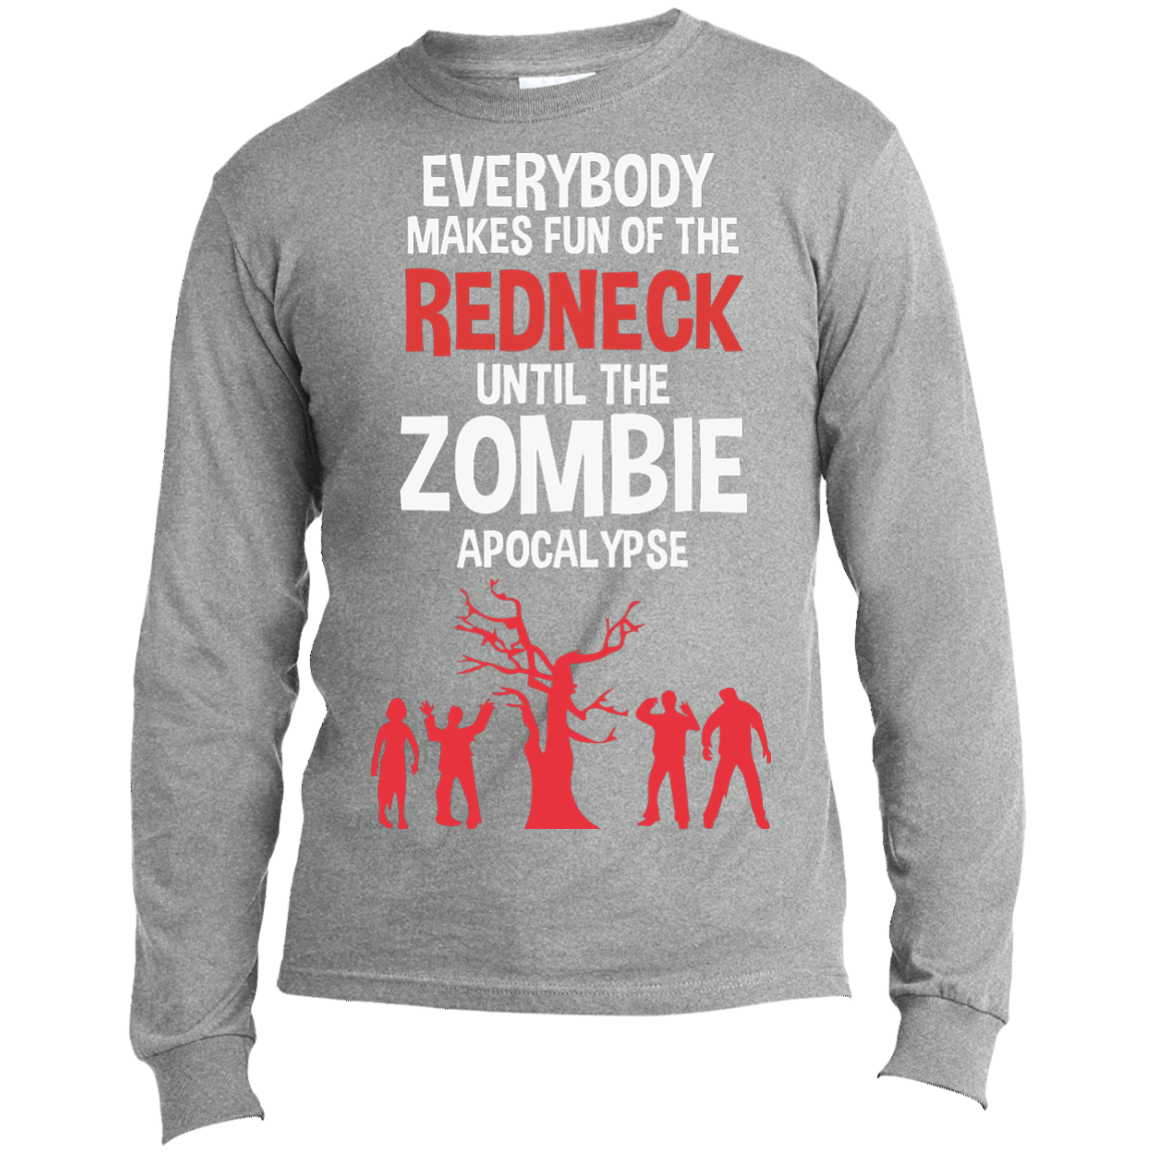 Redneck White - Long Sleeve T-Shirt - Monday Monday